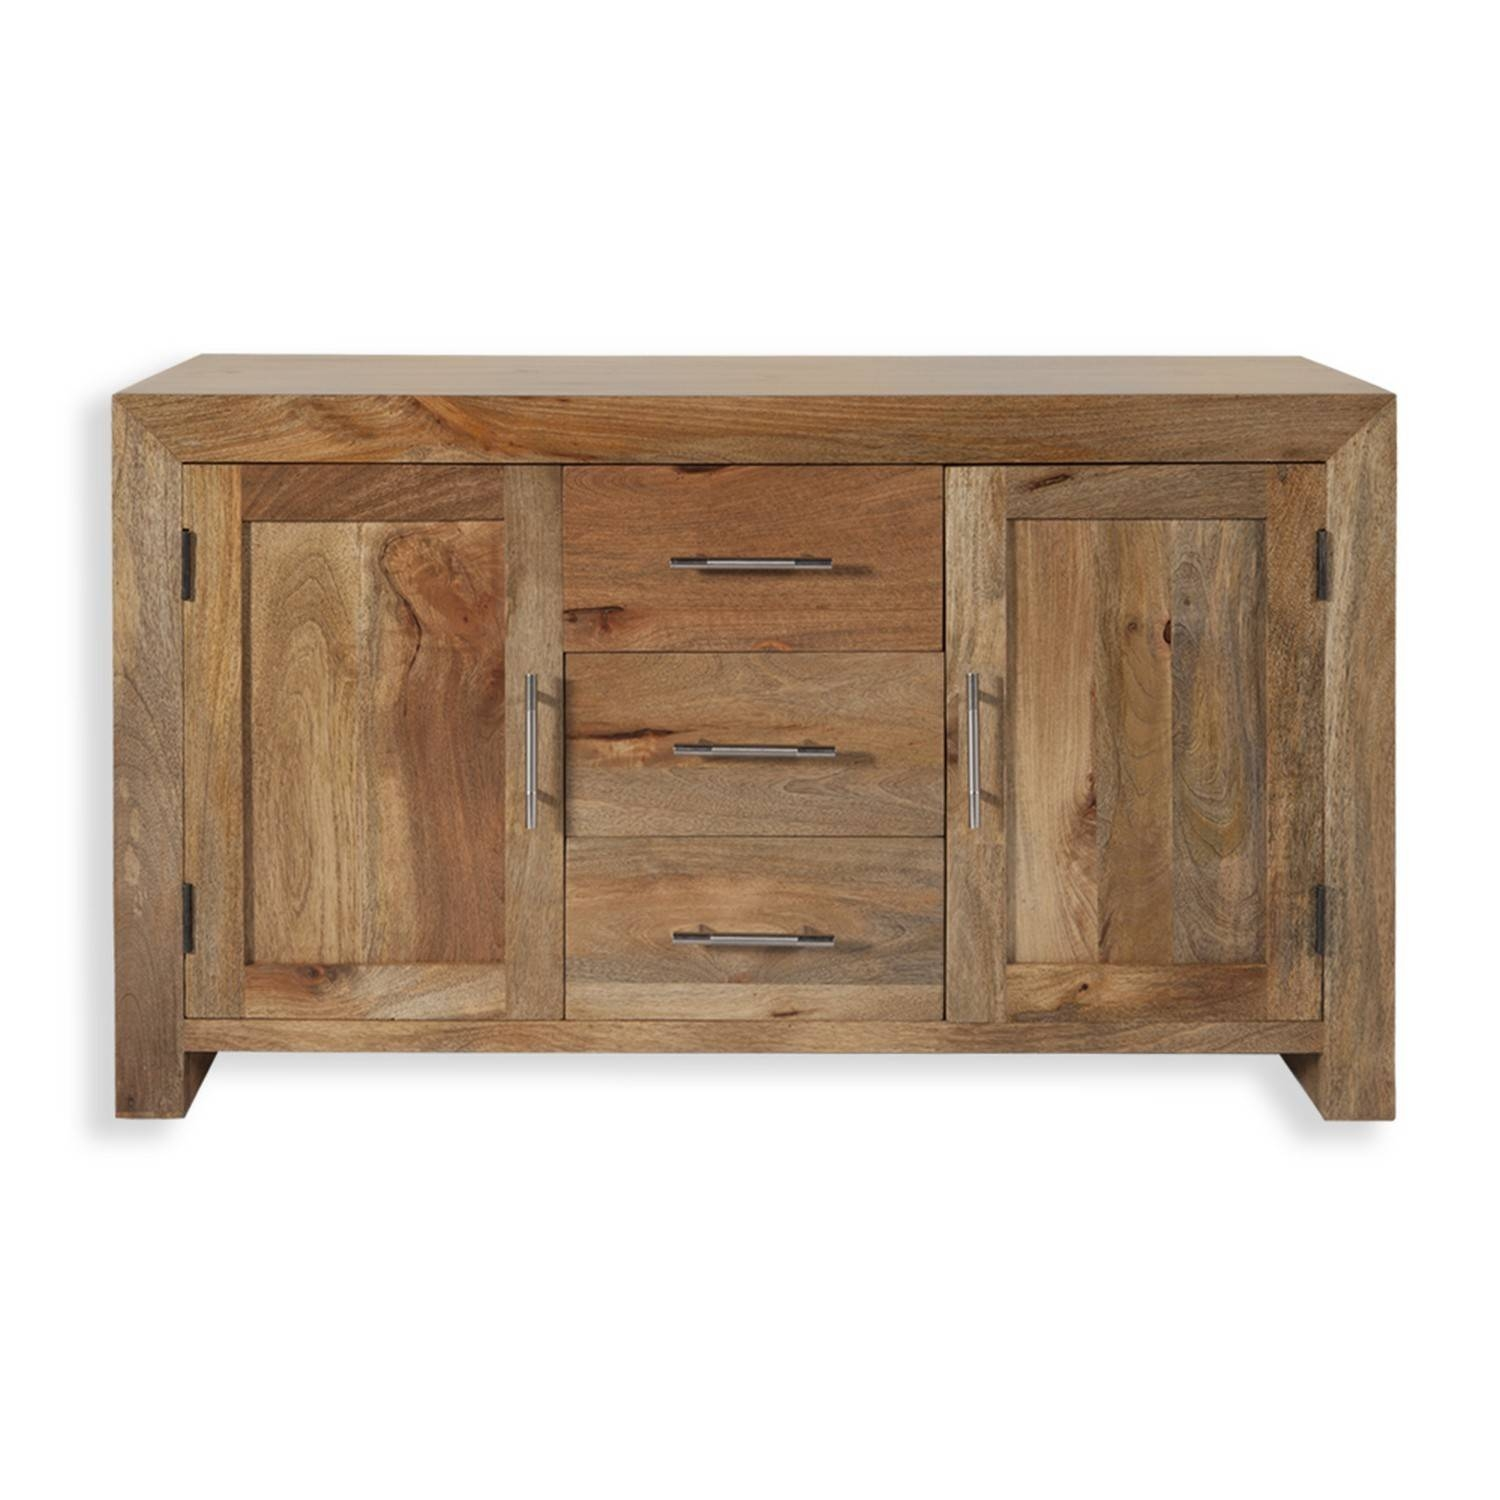 Sideboards & Cabinets Pertaining To Most Current Quirky Sideboards (#13 of 15)